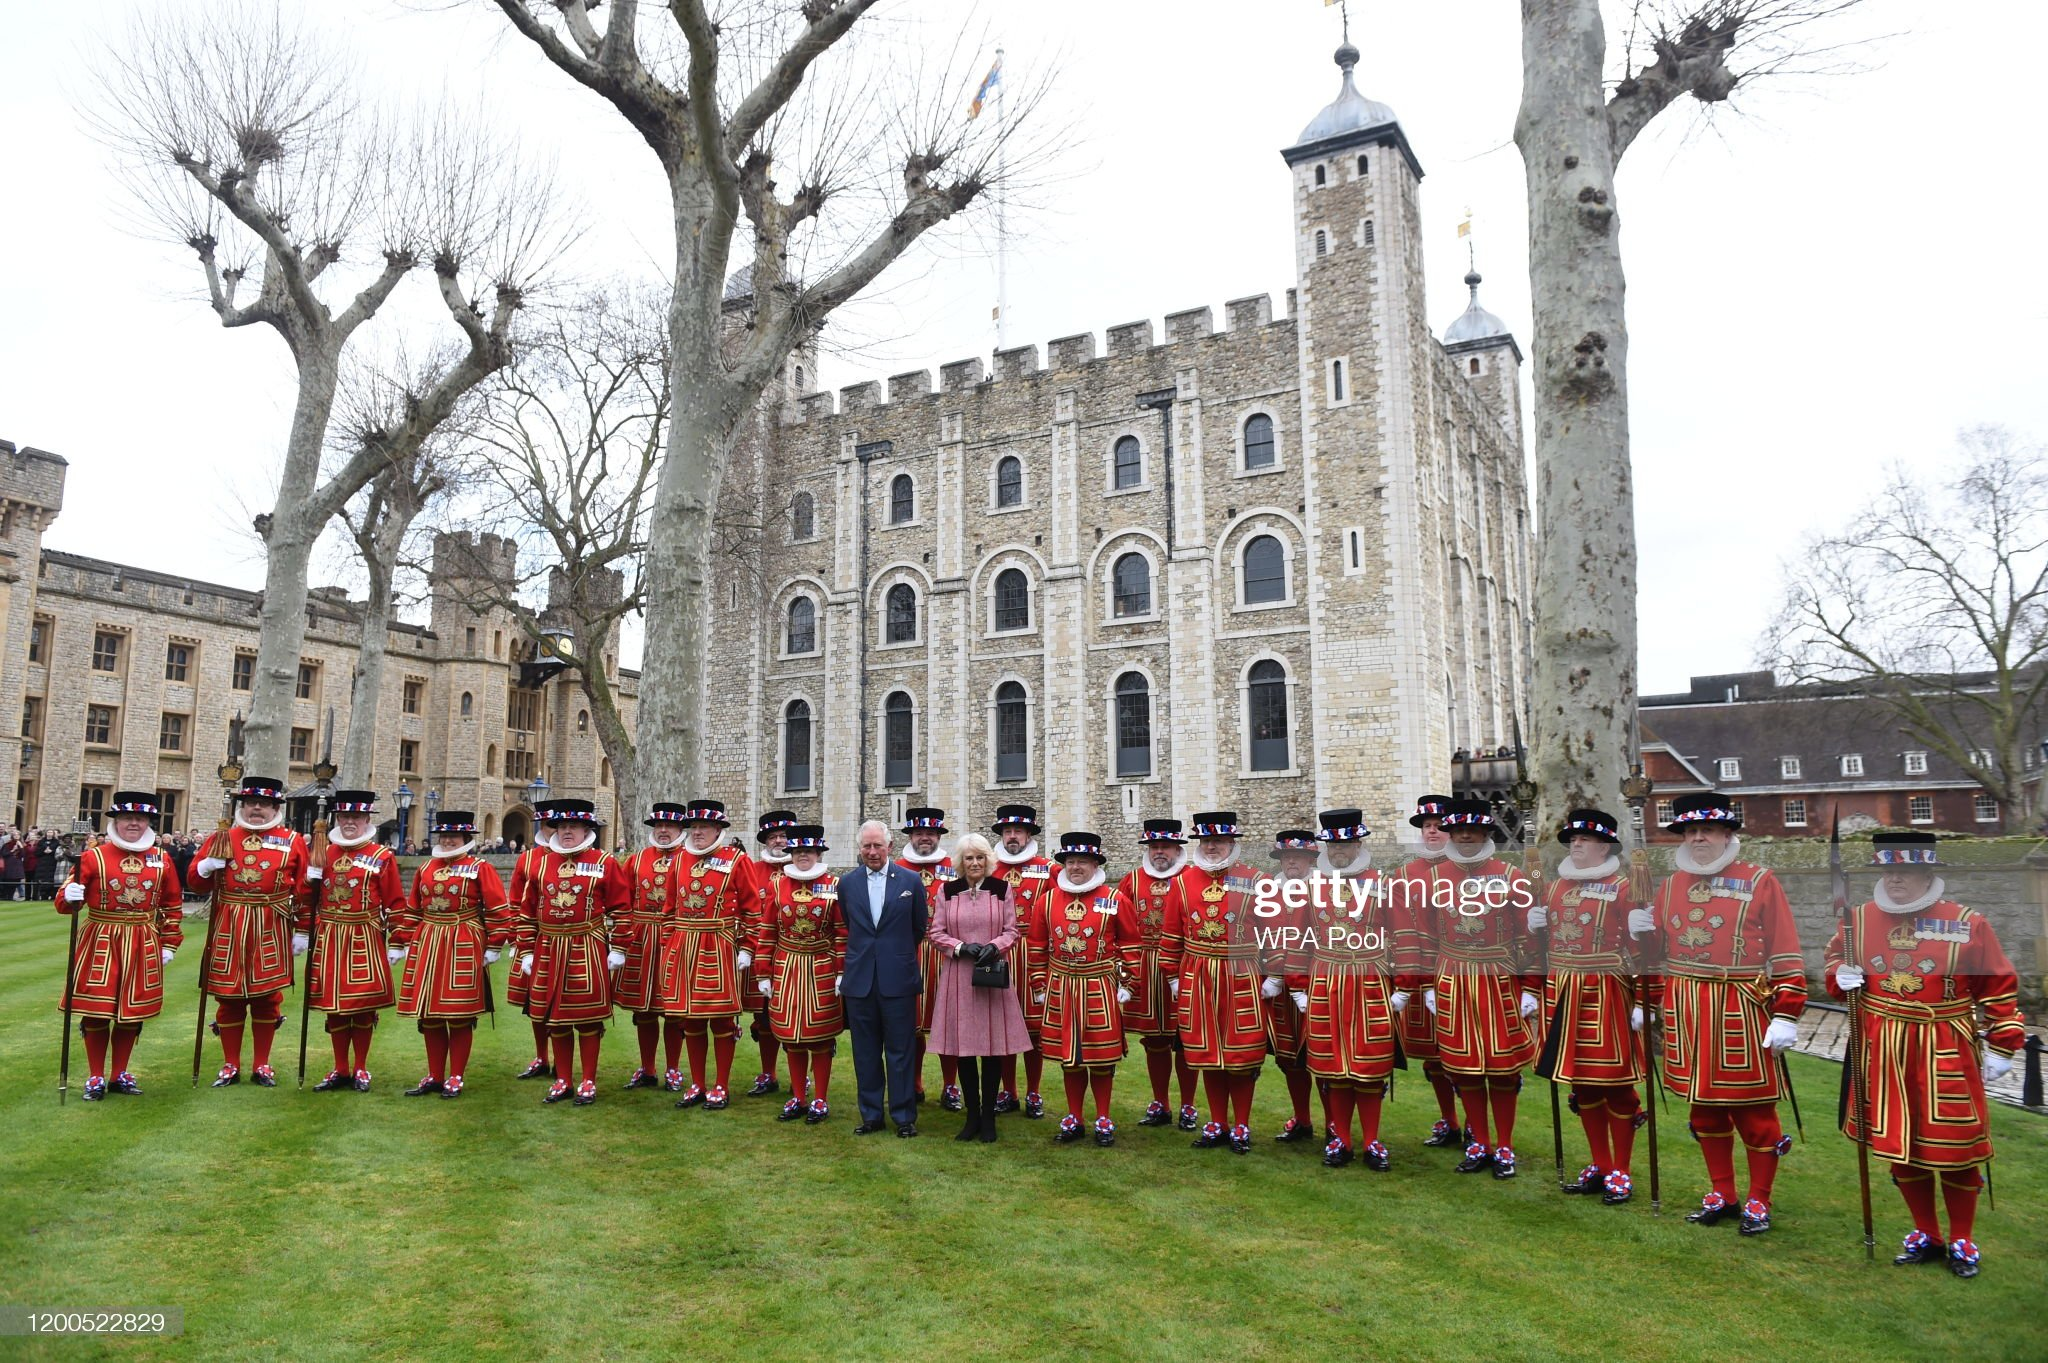 prince-charles-prince-of-wales-and-camilla-duchess-of-cornwall-visit-picture-id1200522829